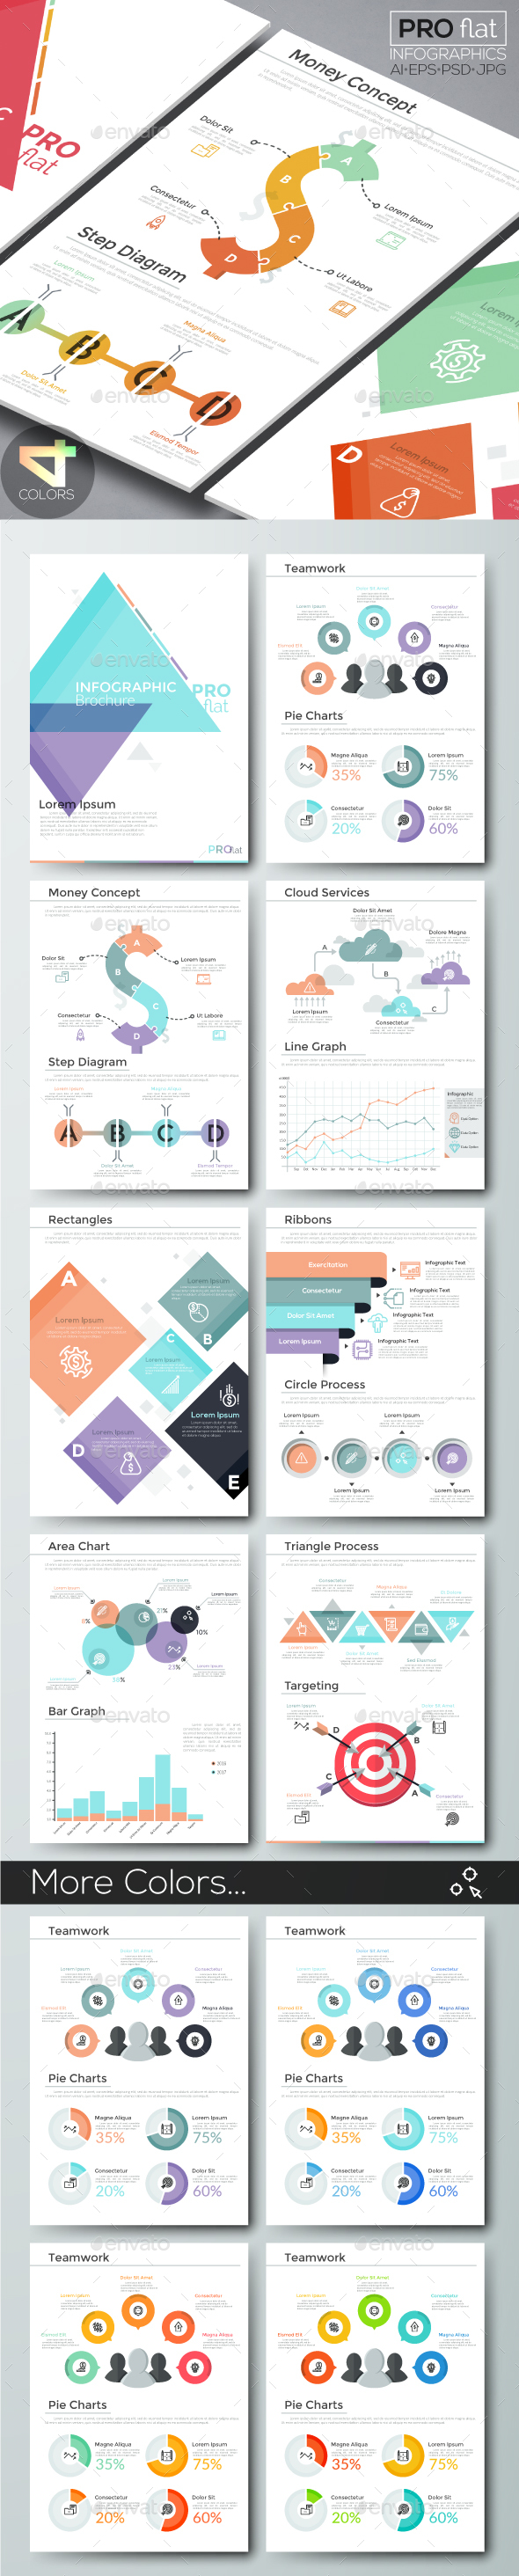 Pro Flat Infographic Brochure 10 (4 Versions) - Infographics